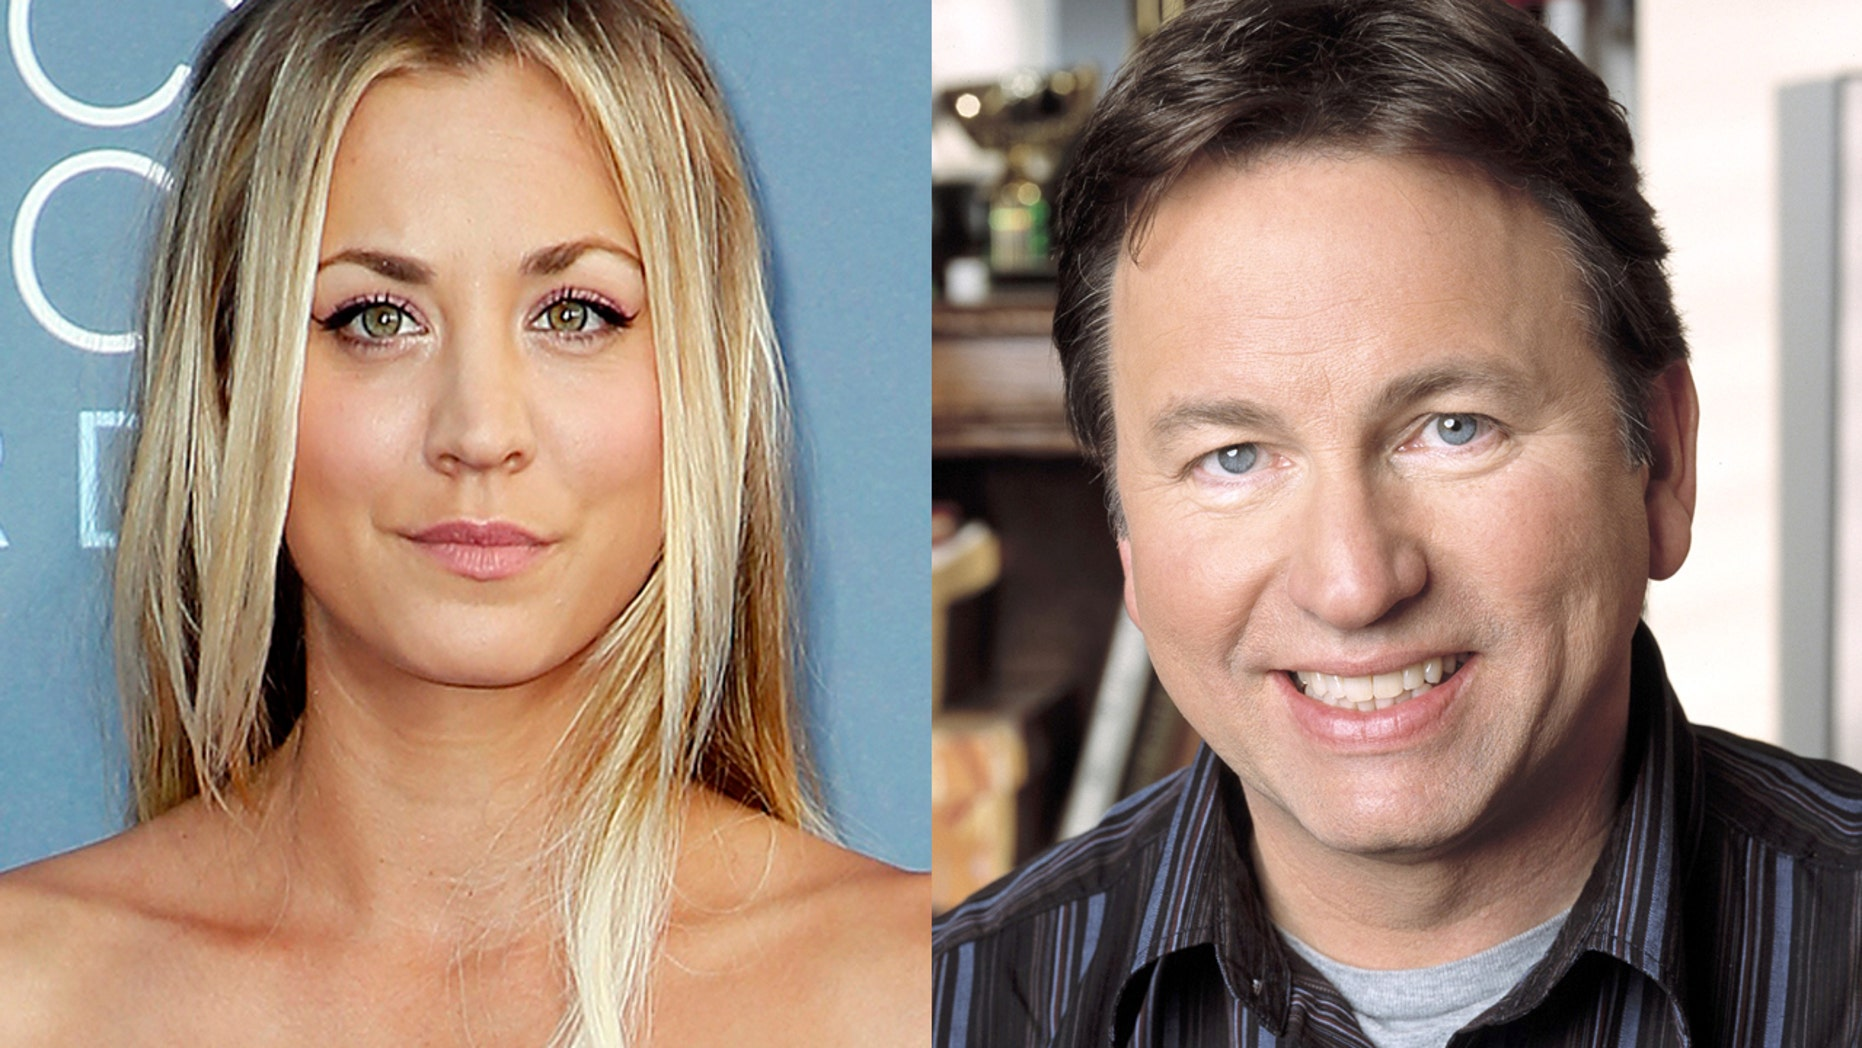 Kaley Cuoco pays tribute to her late co-star, John Ritter, with a visit to his Hollywood star on the Walk or Fame.